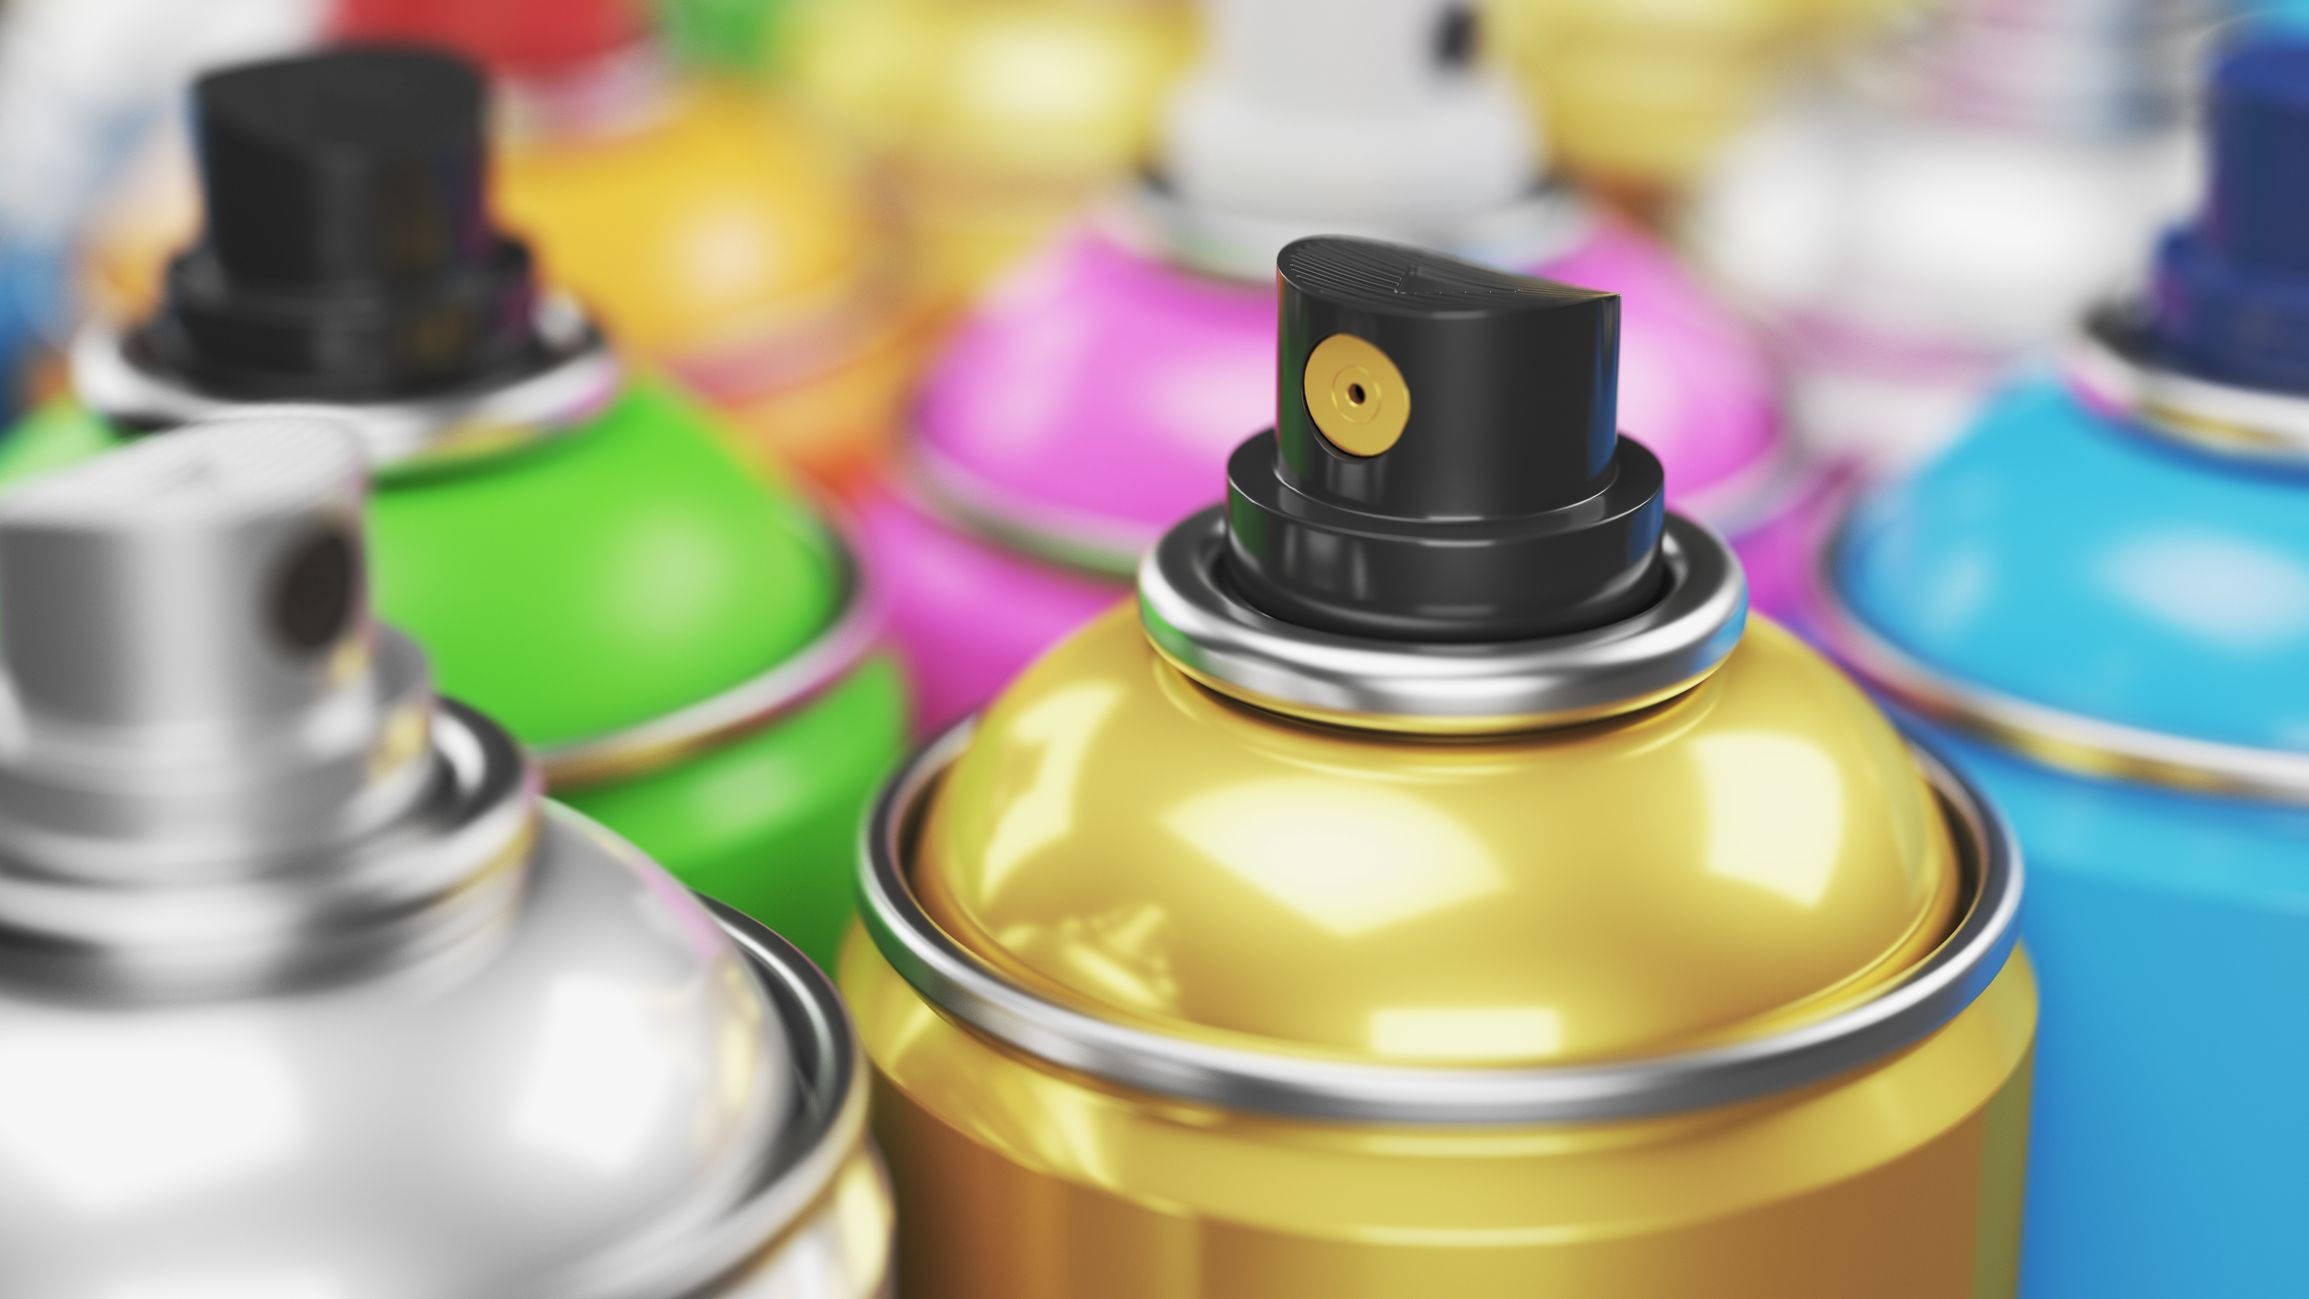 Aerosol Cans Market to Witness Rise in Revenues During the Period 2021-2031